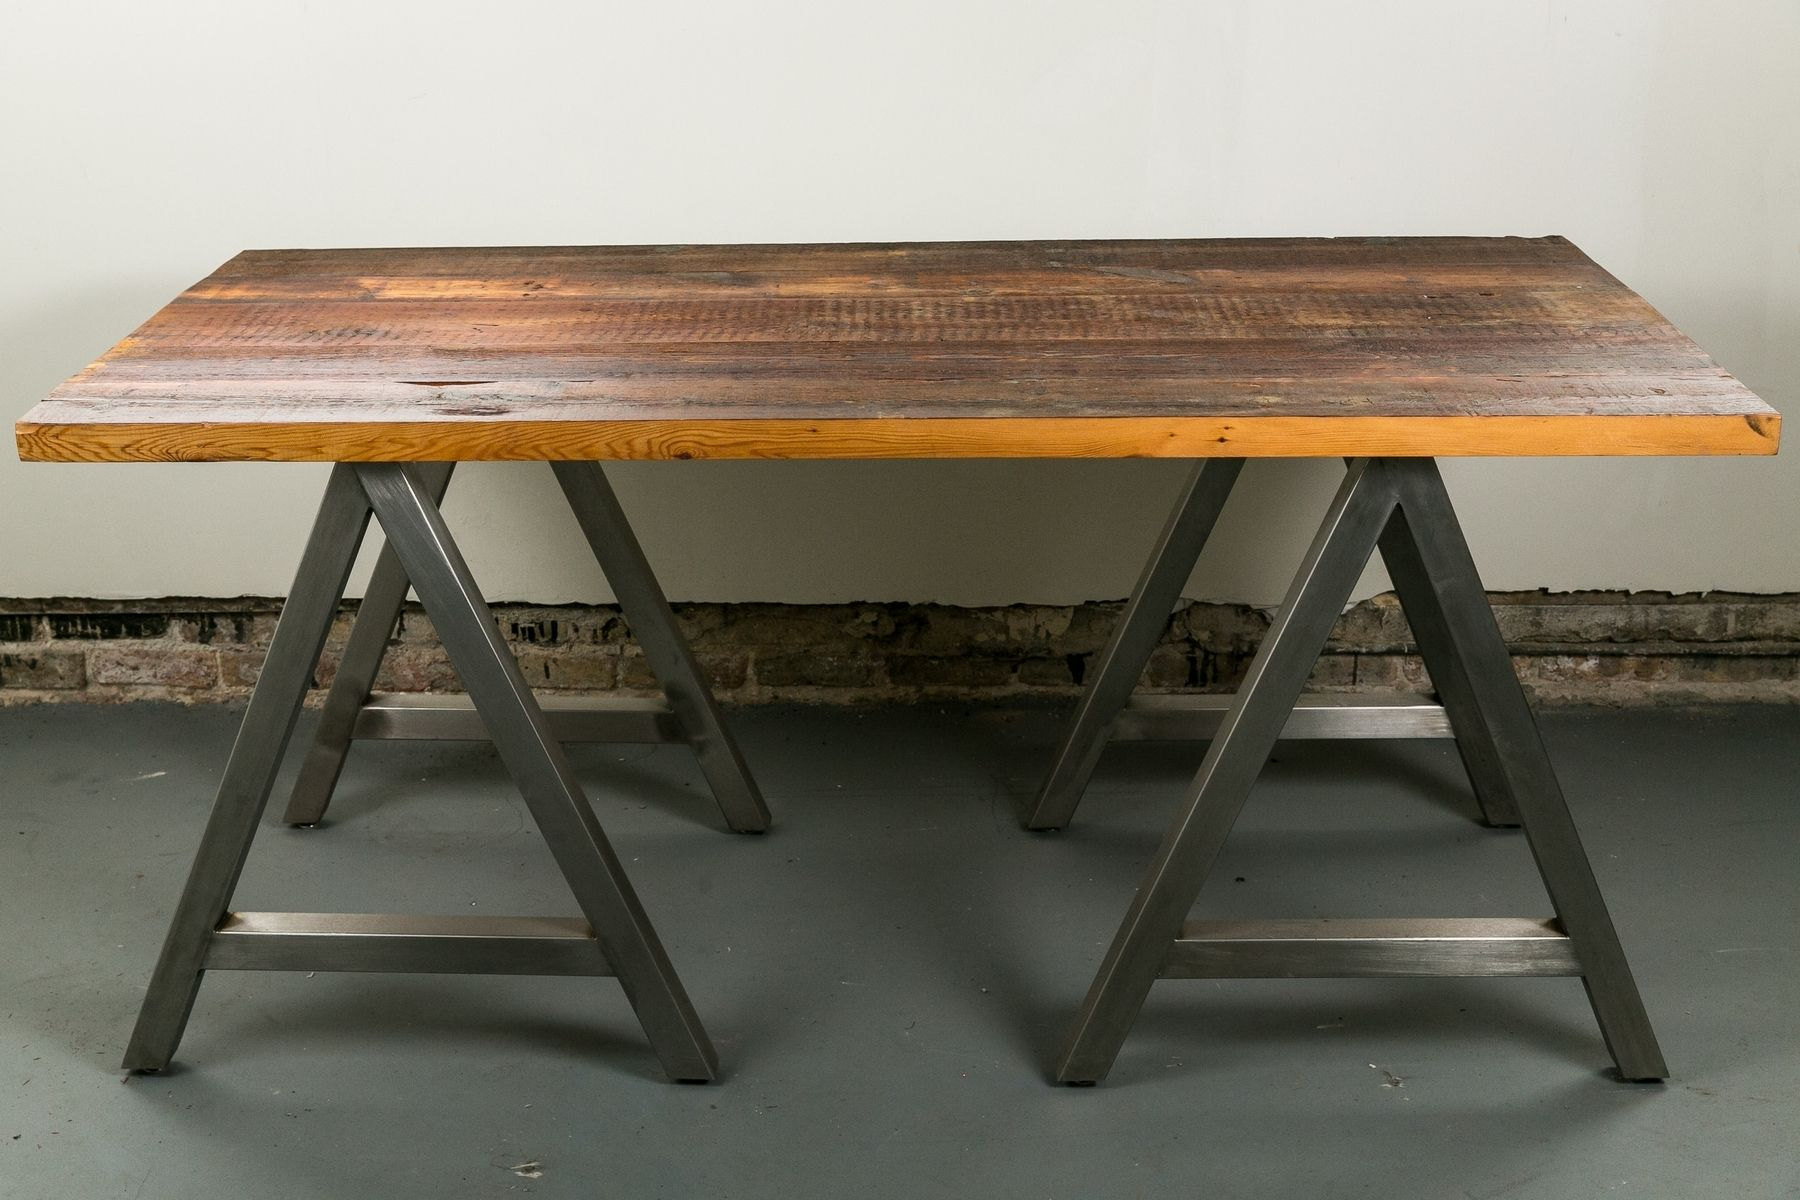 Handmade harvest work surface by buchs urban rebuilds Sawhorse desk legs